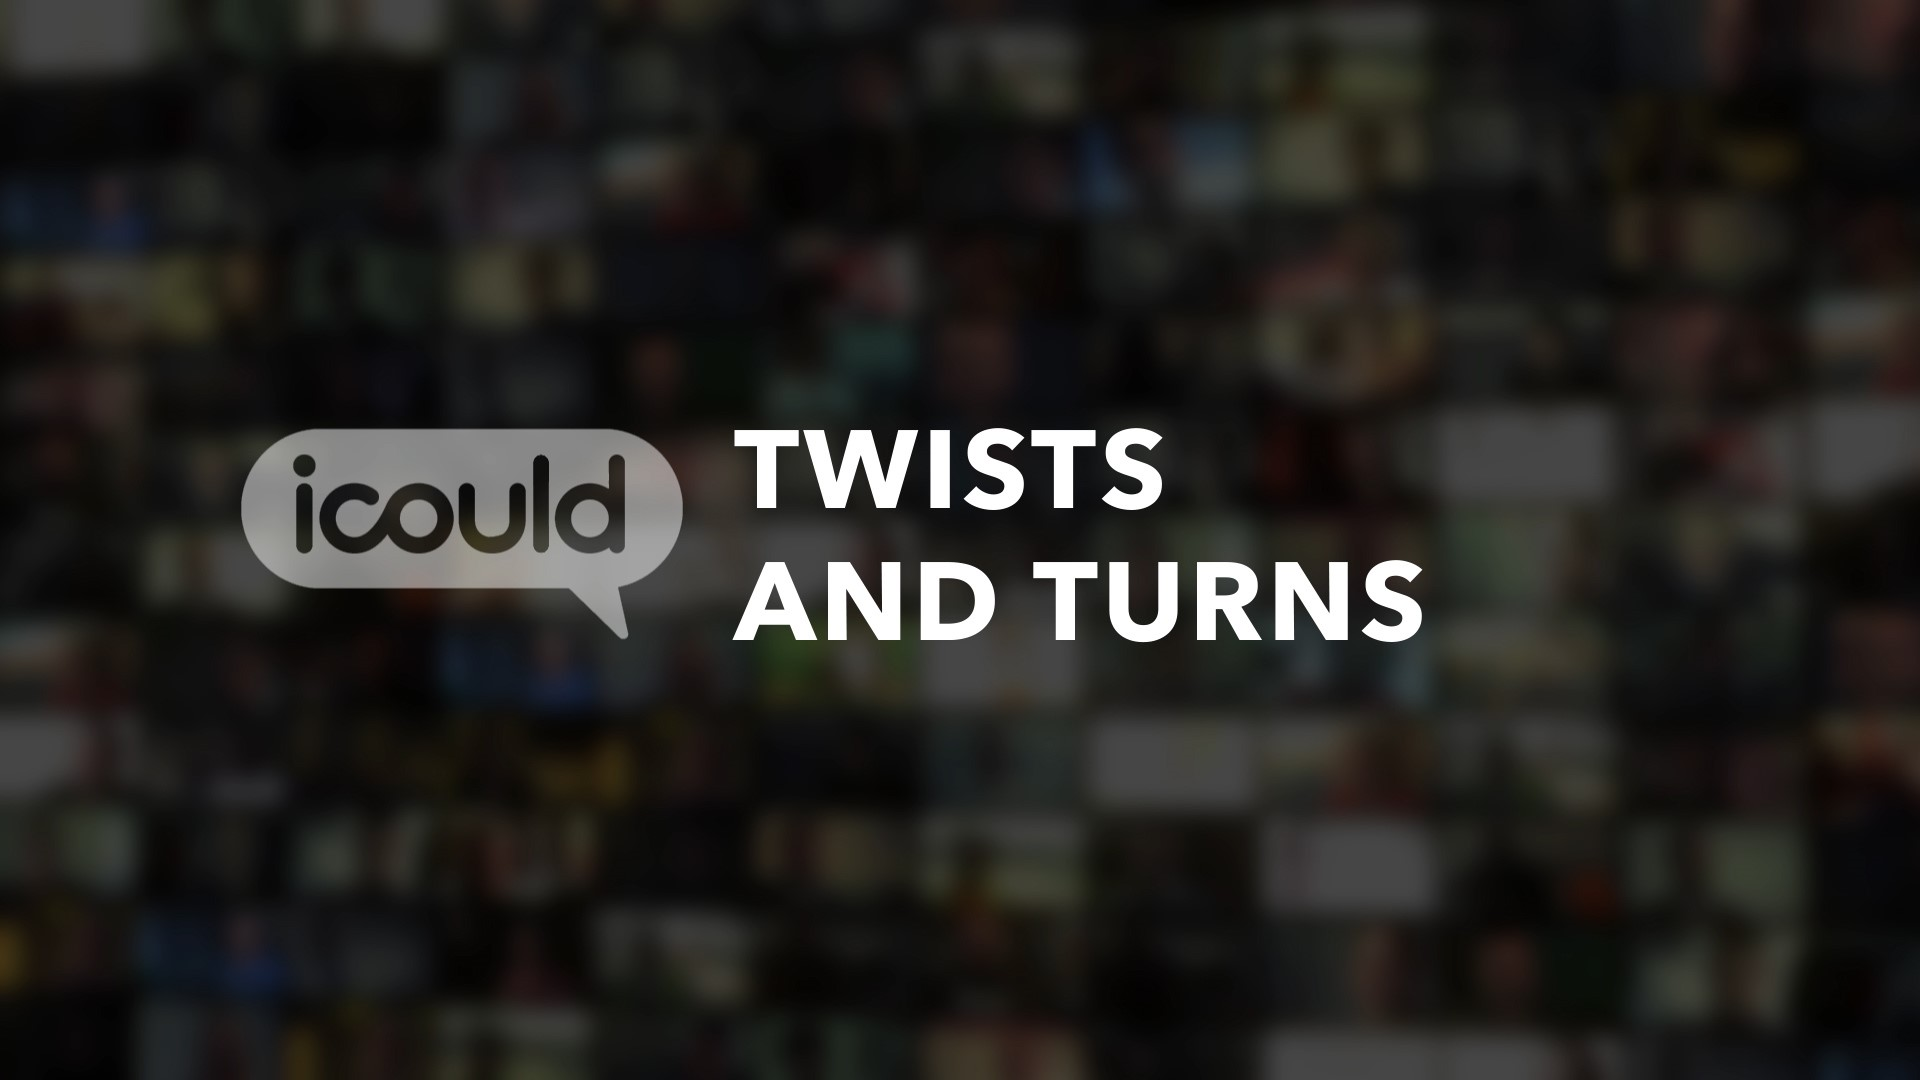 could twists and turns logo